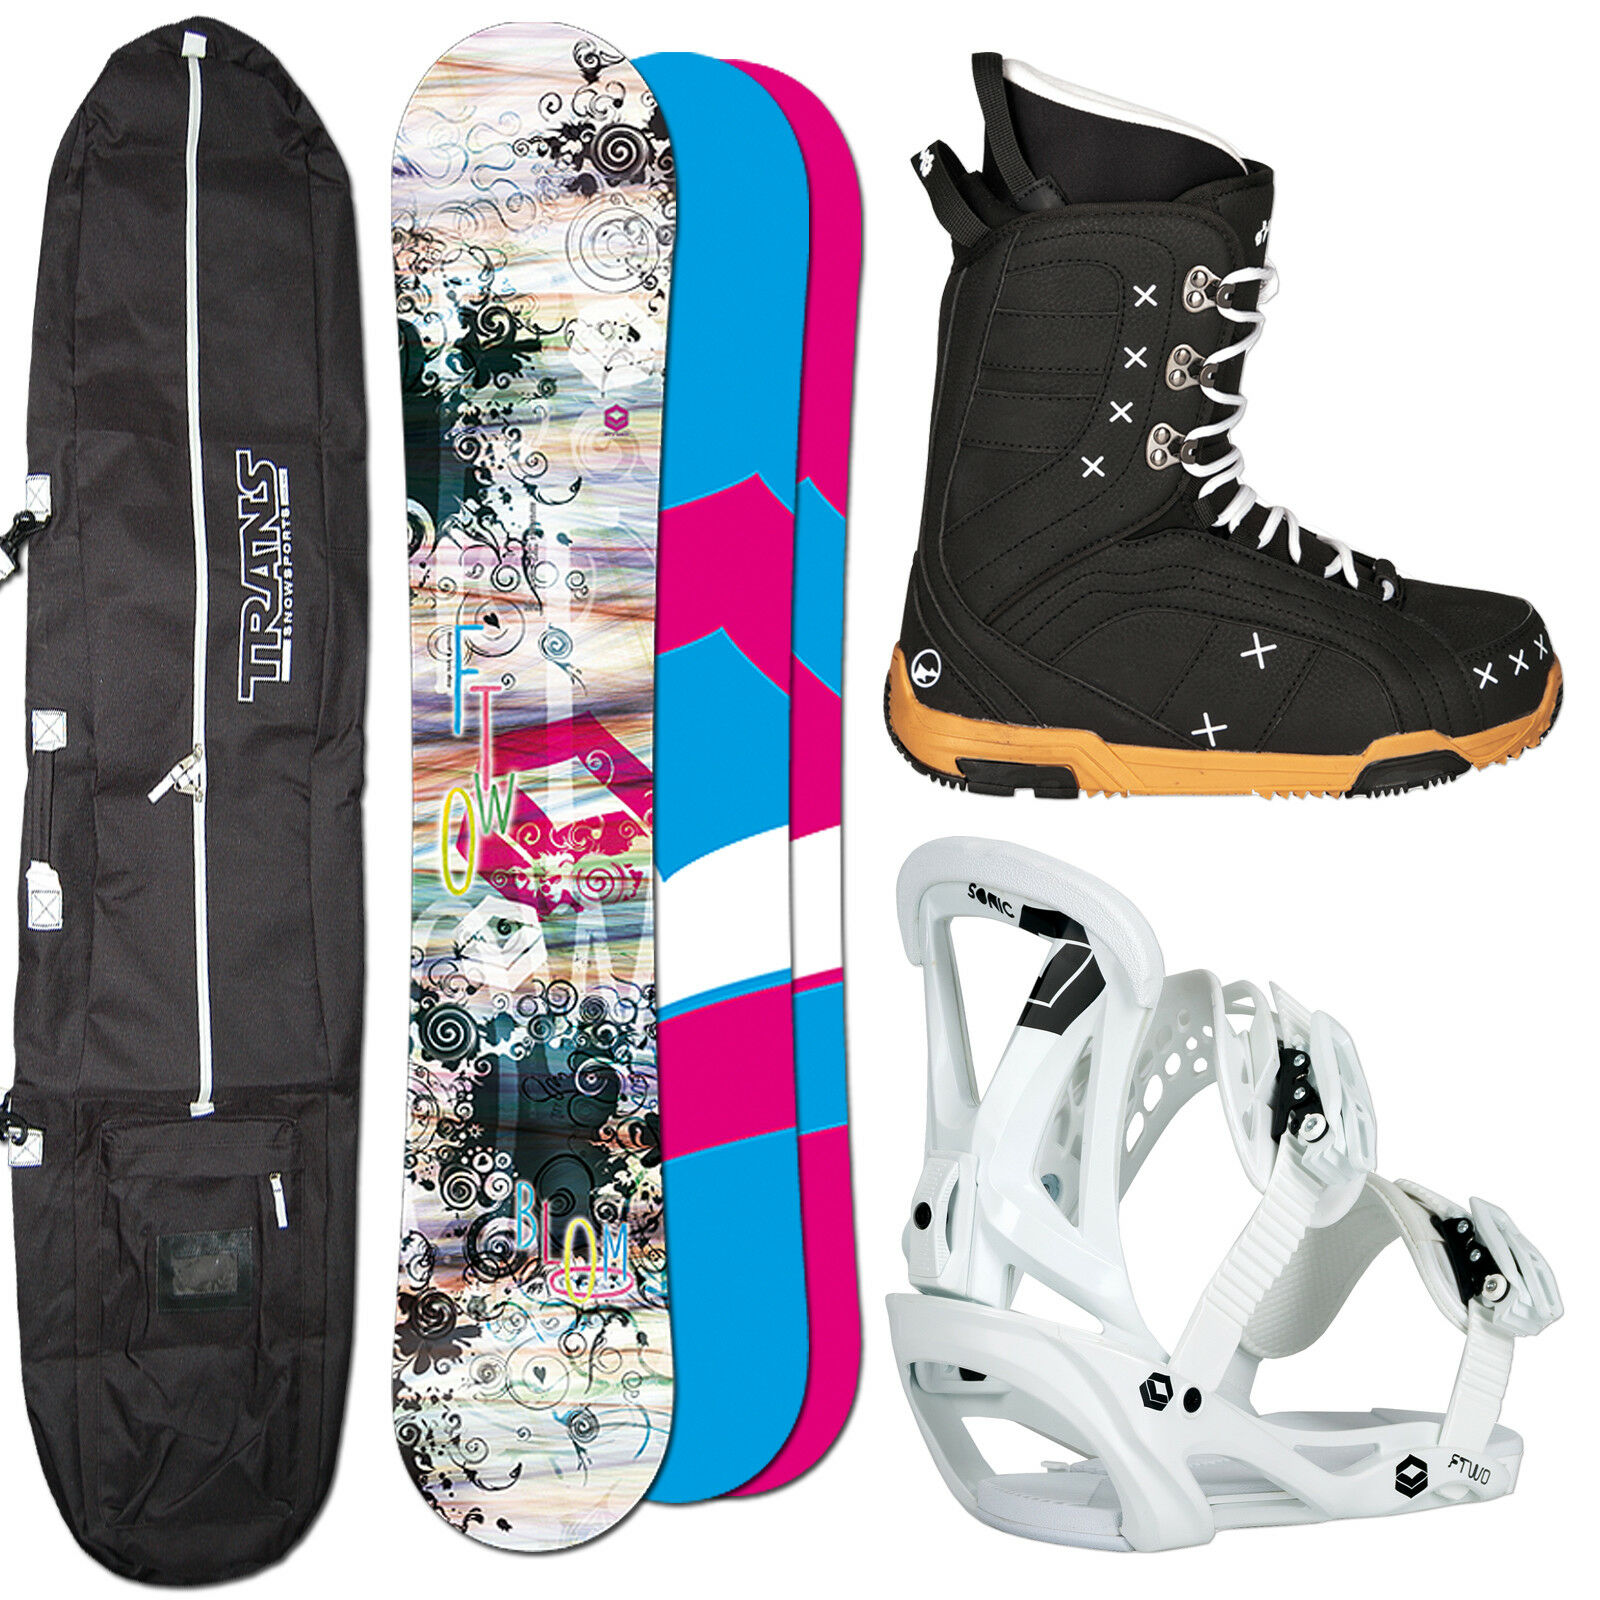 Women's Snowboard Set Ftwo Bloom 154 cm + Ftwo Sonic Binding SIZE M + Boots+ Bag